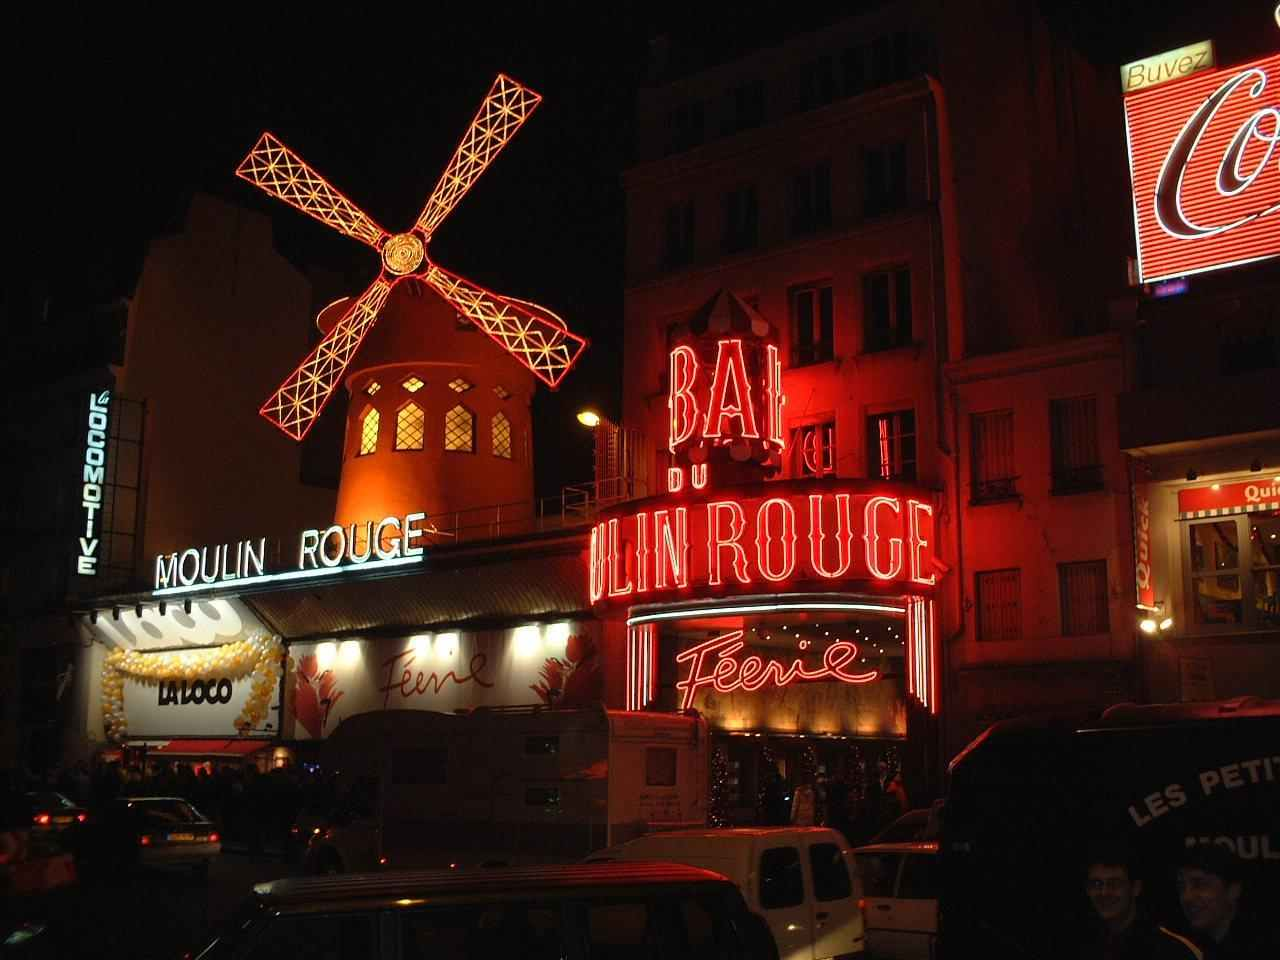 Moulin_rouge[1]